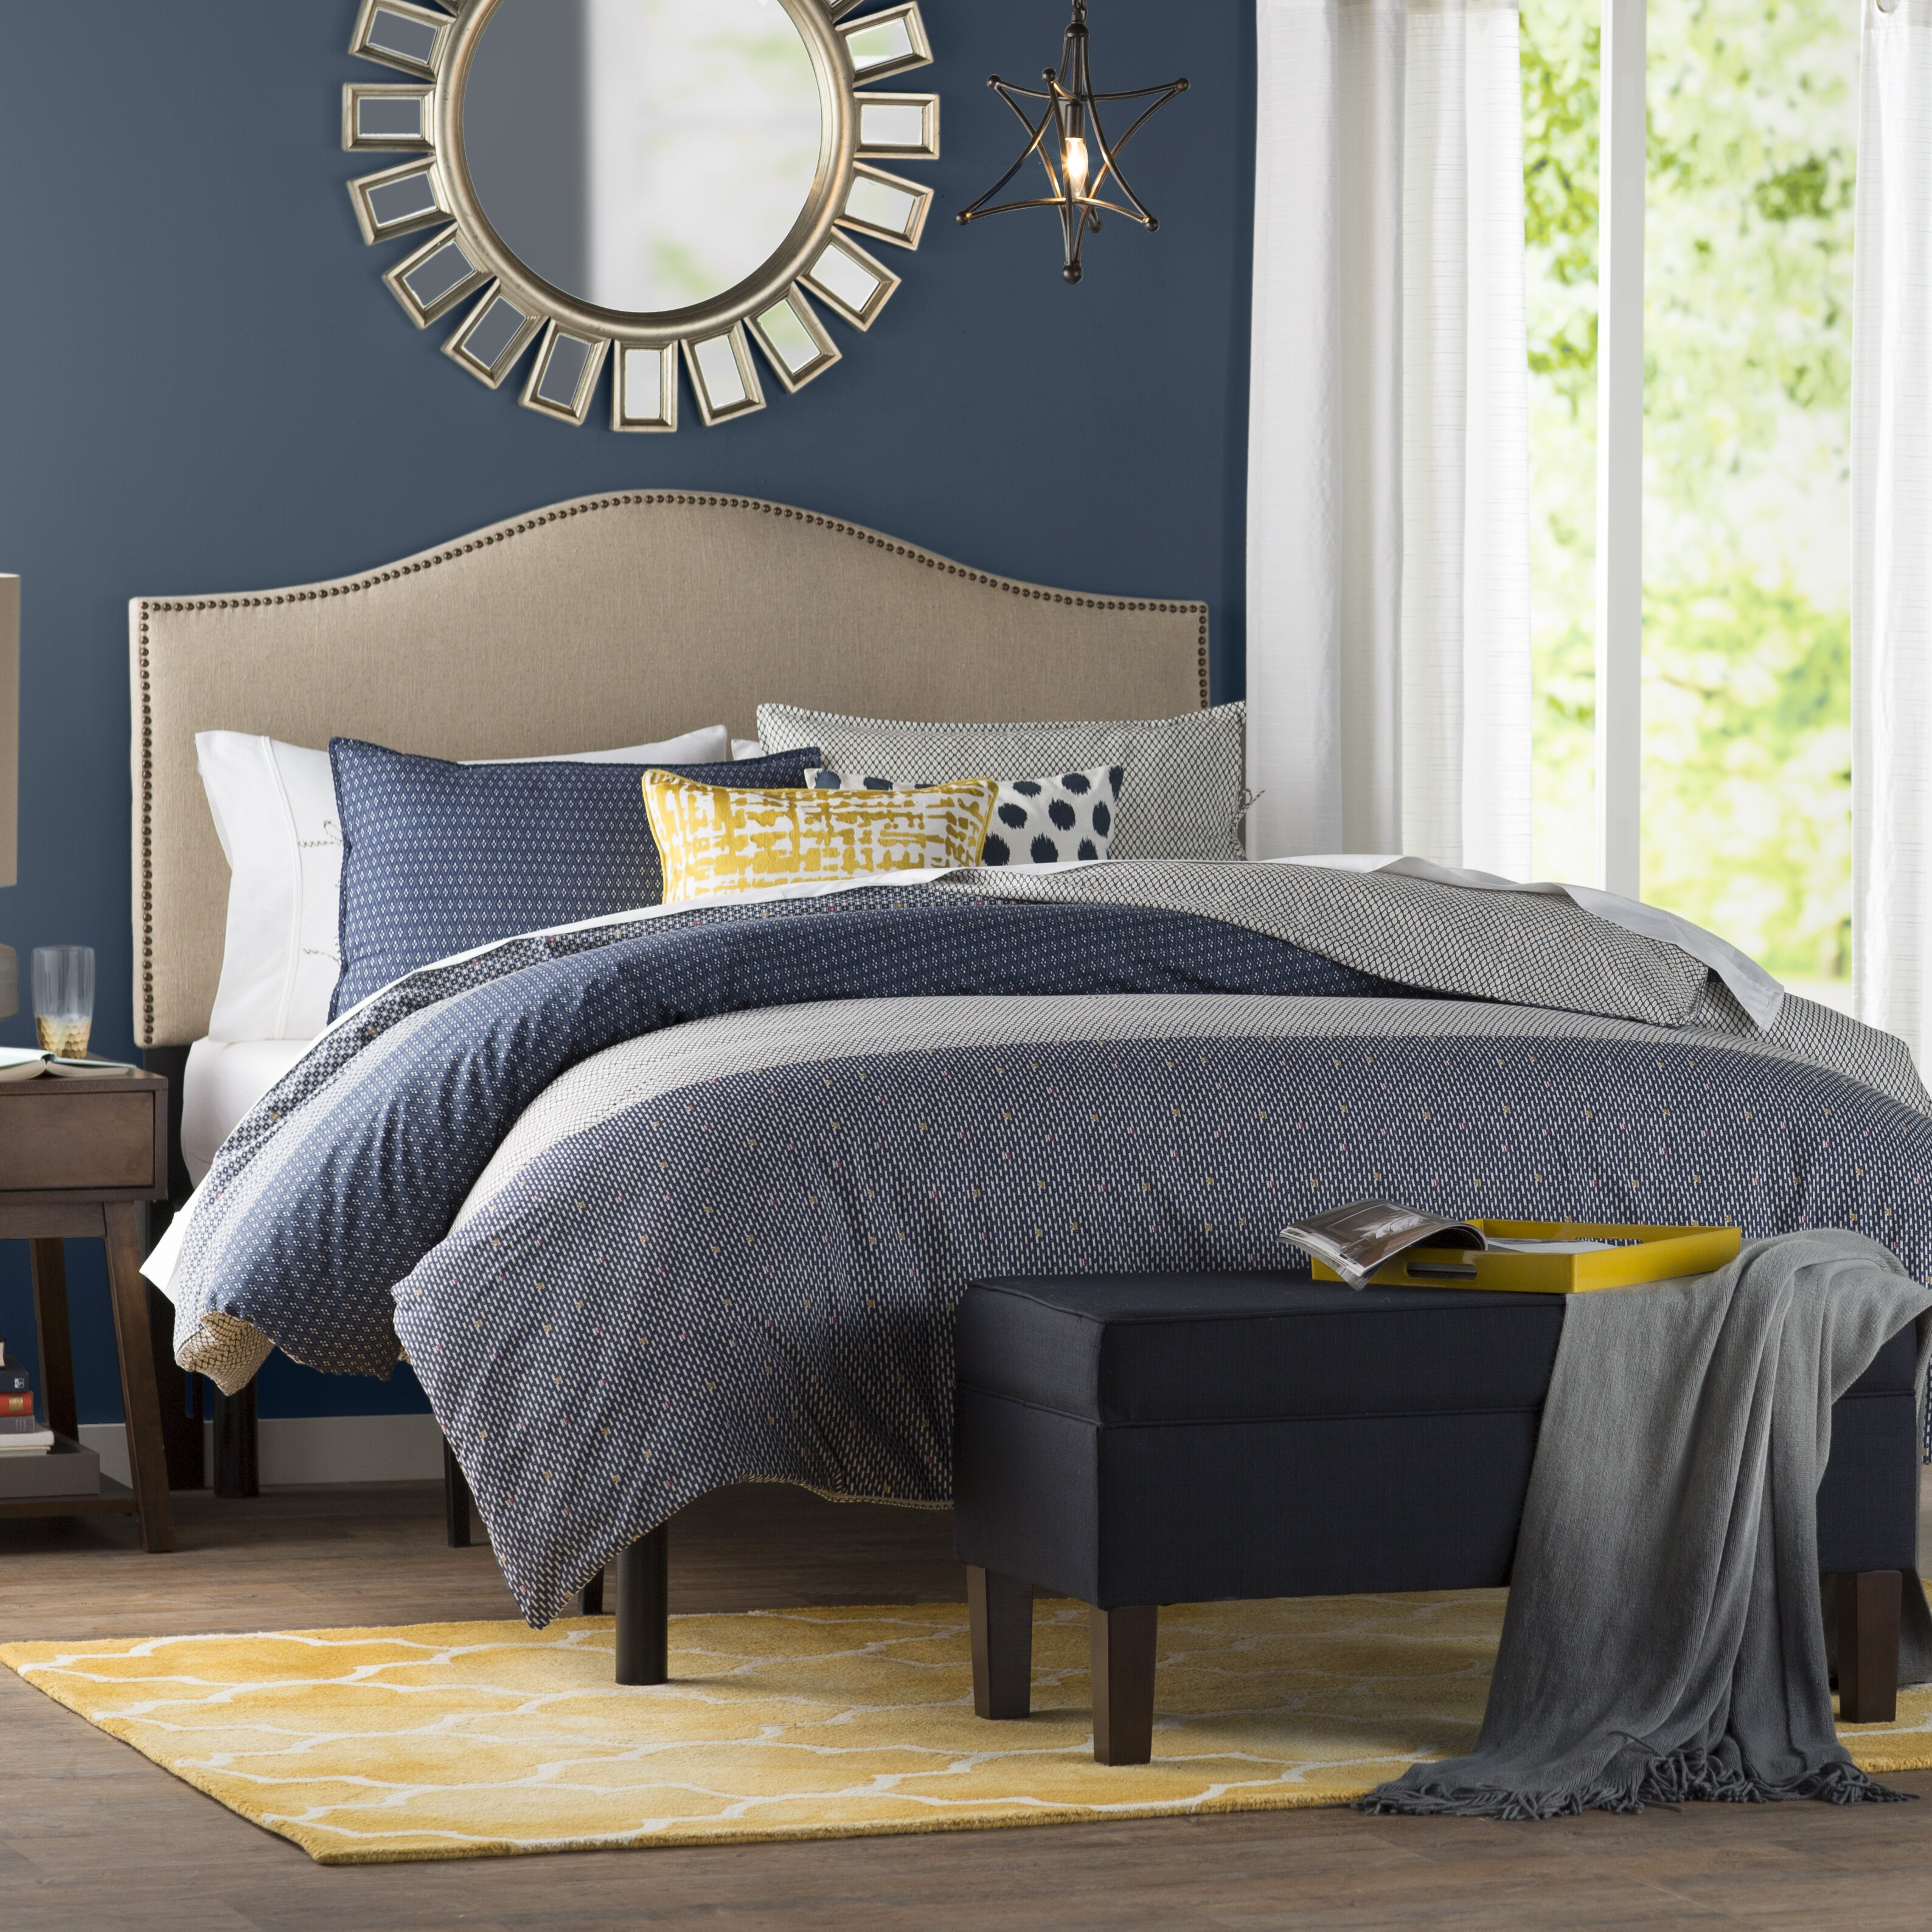 Chandra Upholstered Storage Bedroom Bench Reviews: Brayden Studio Upholstered Storage Bedroom Bench & Reviews